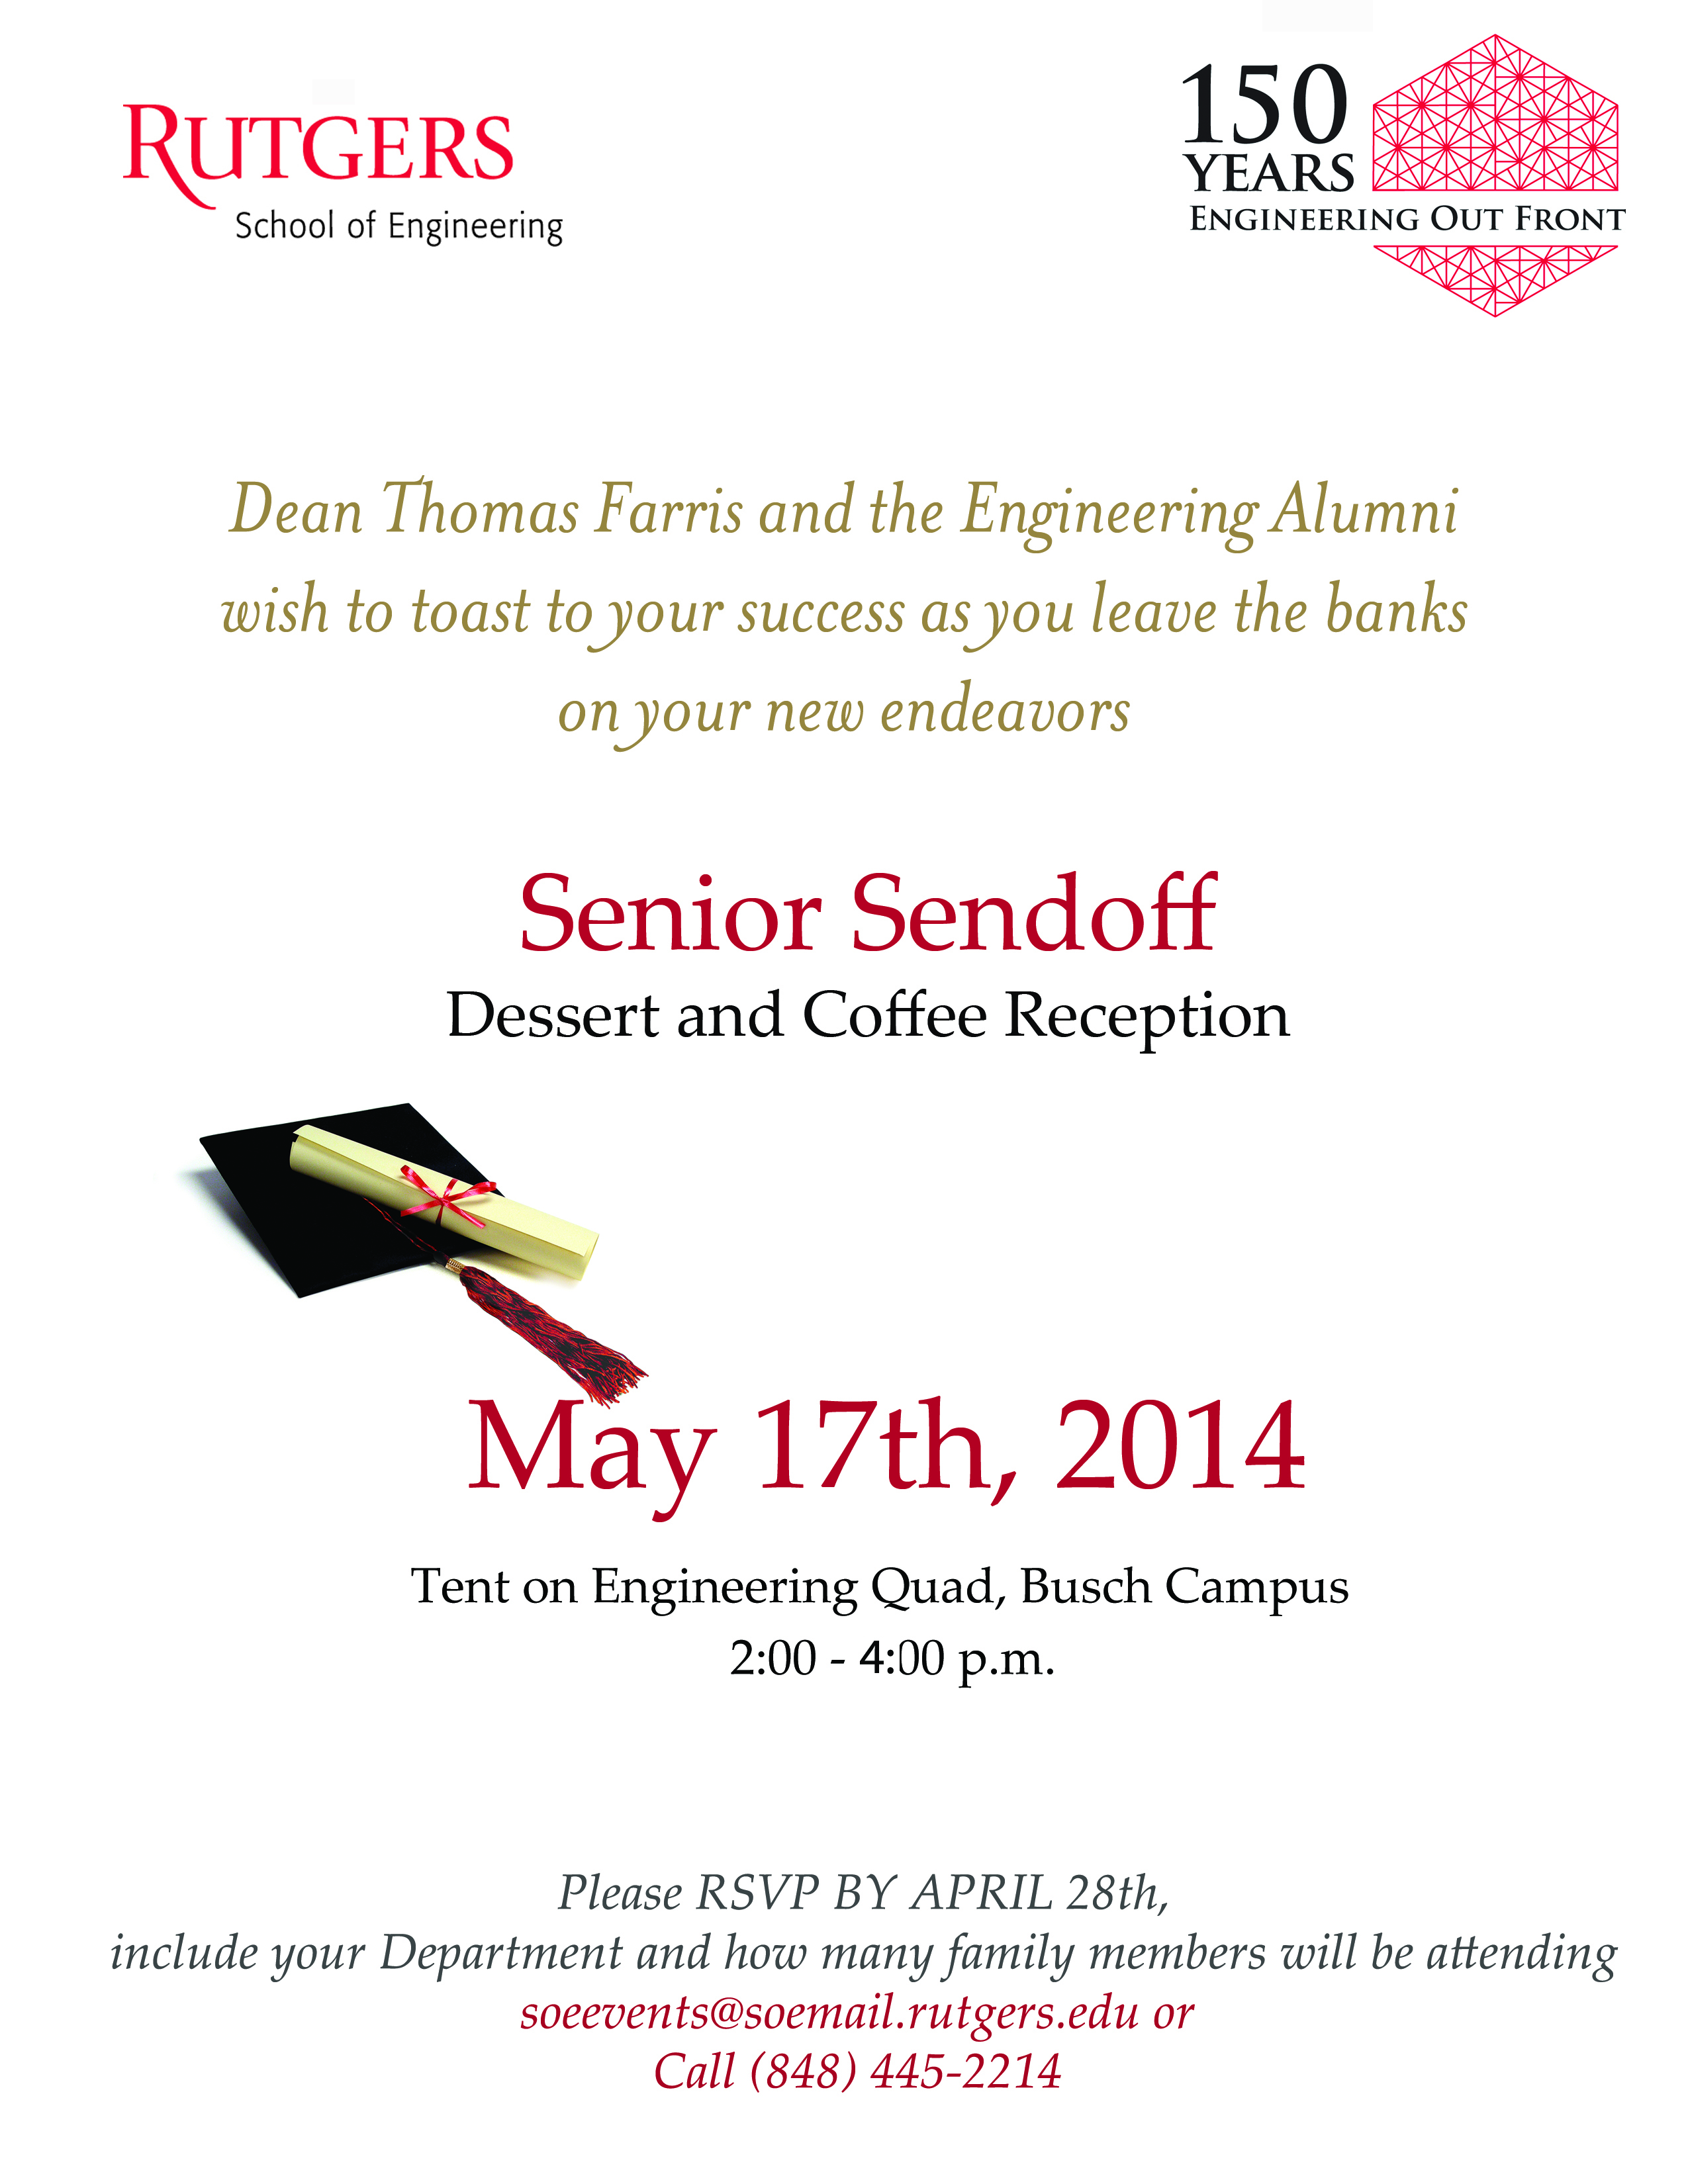 Senior sendoff flyer.jpg